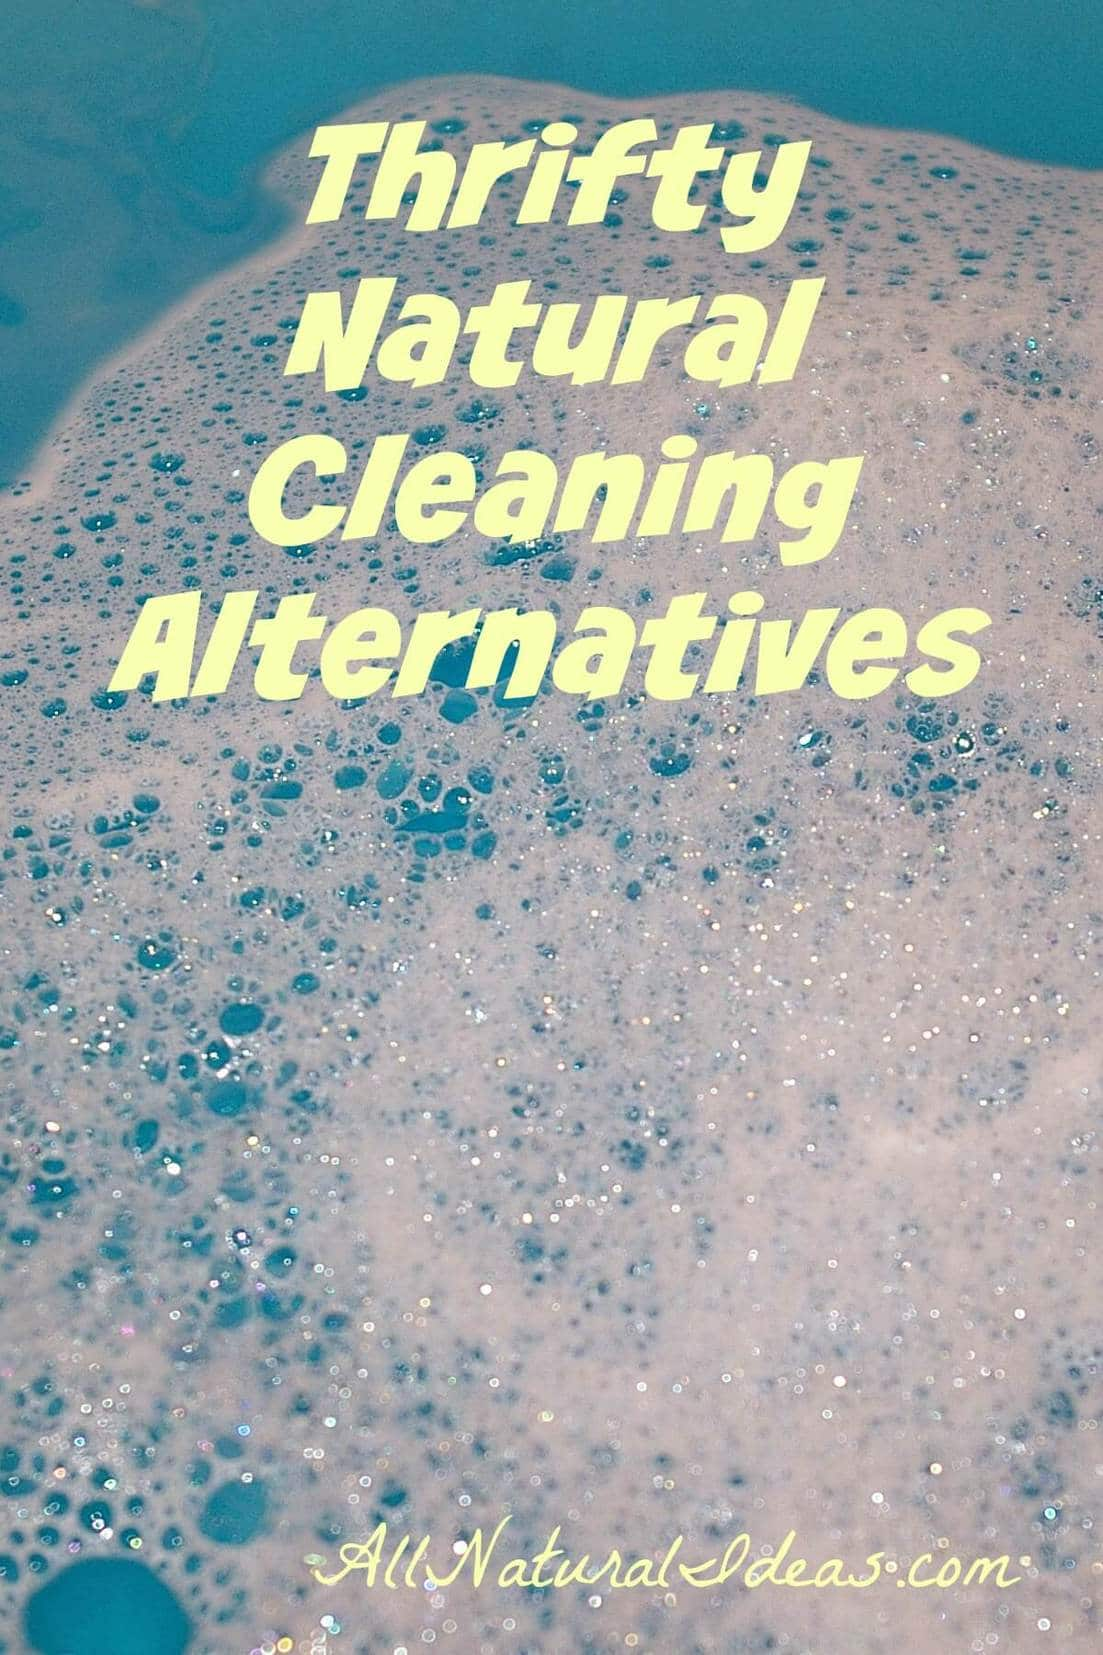 Tired of paying high prices for cleaning supplies? Worried synthetic chemicals are bad for your family. Here are thrifty natural cleaning alternatives! | allnaturalideas.com